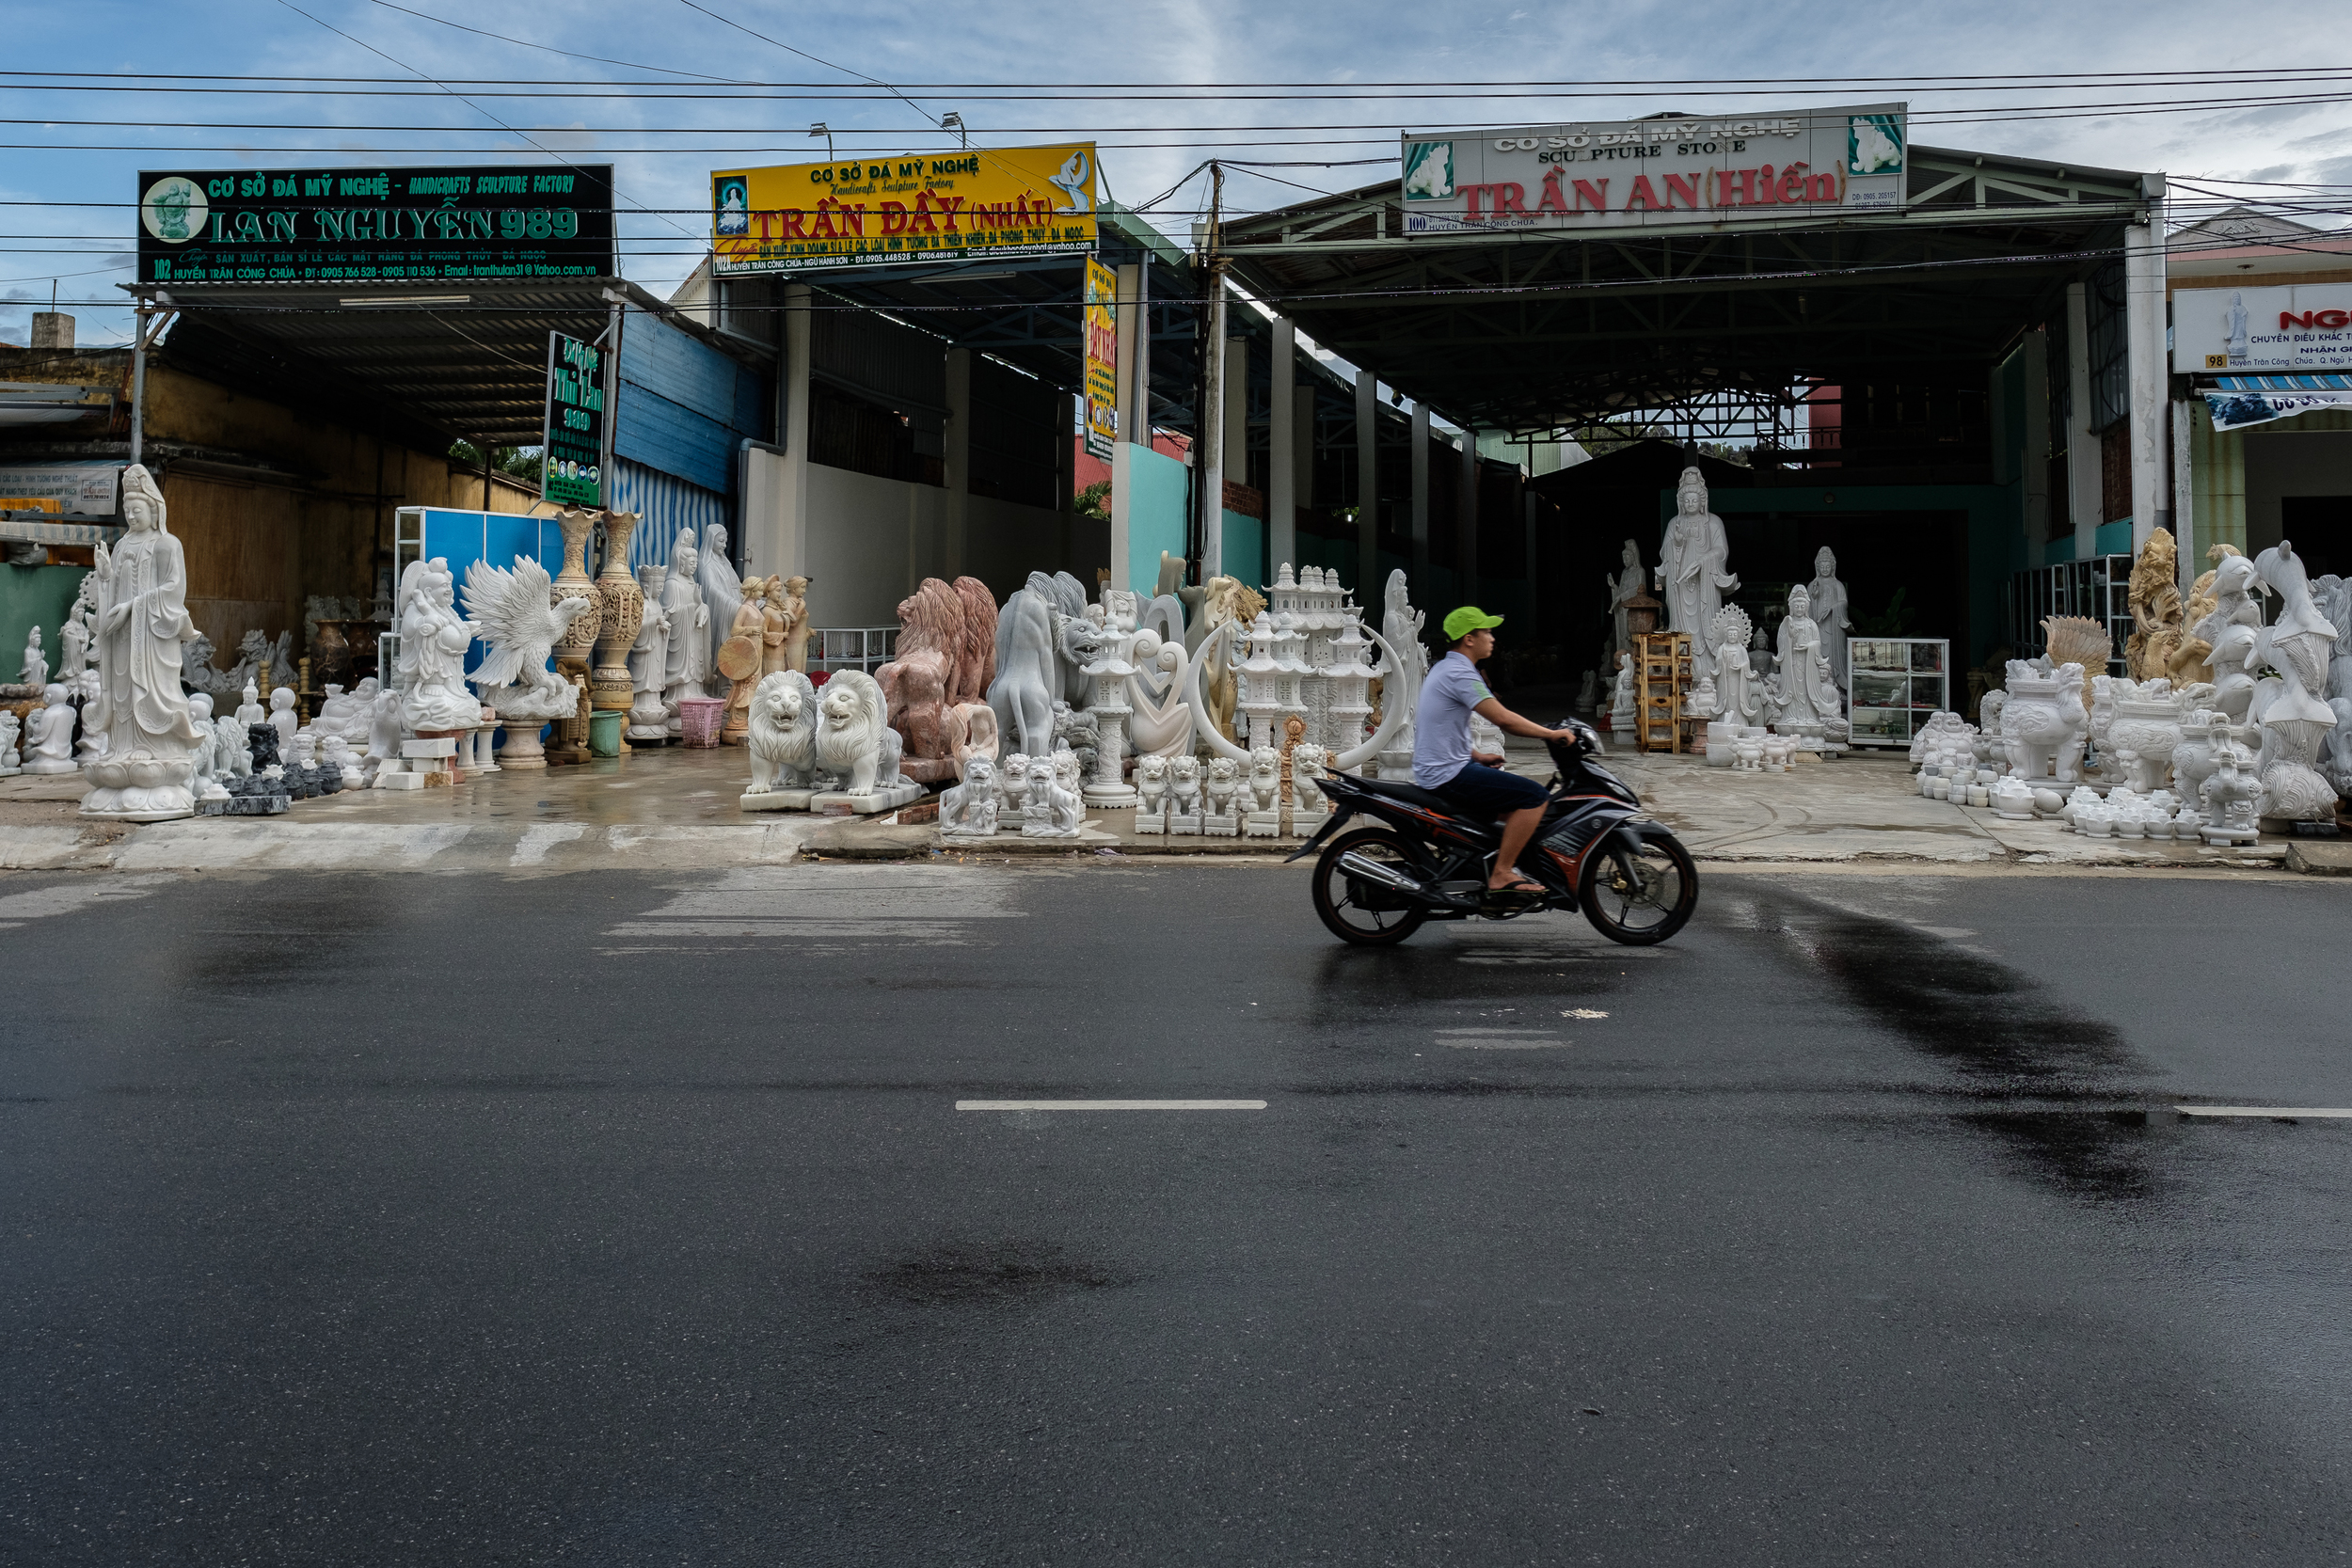 The Marble Mountains area near Danang is famous for stone sculpture and stone cutting crafts, there is a myriad of workshops and shops along the roads.